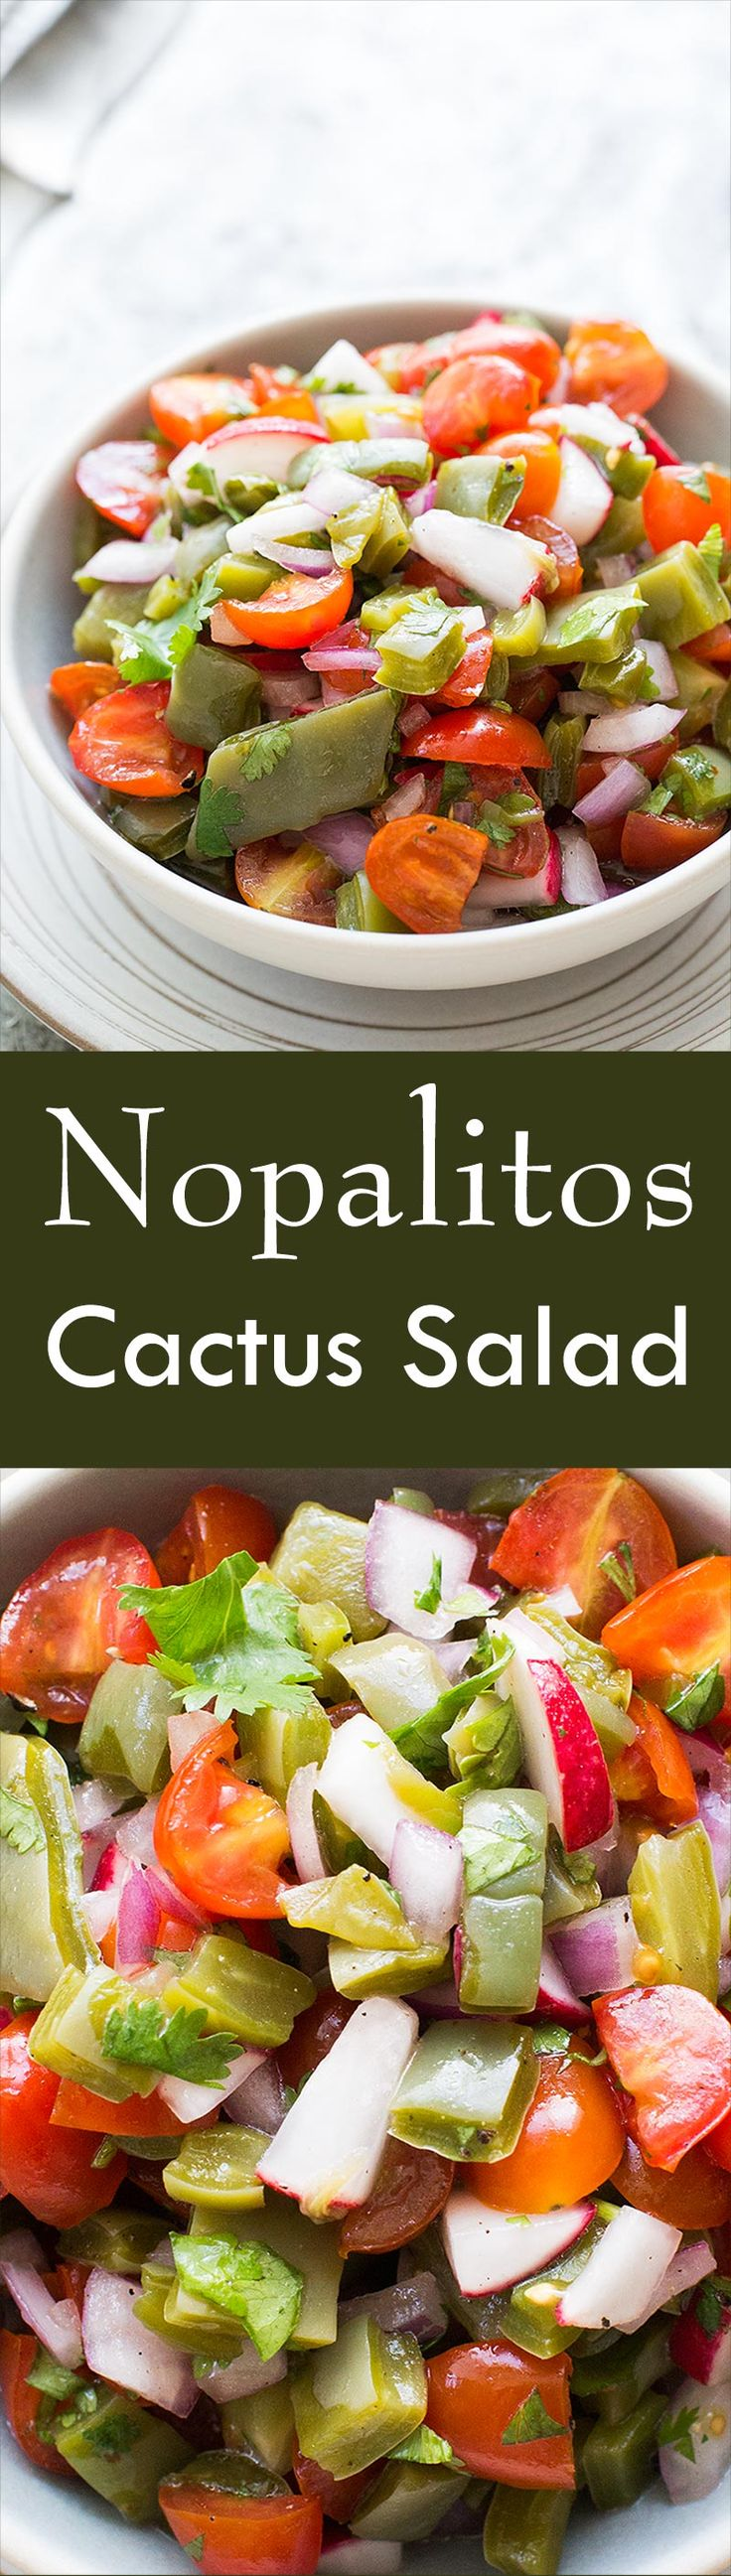 Ever eat cactus? Nopalitos are so GOOD! This easy, budget-friendly salad is a classic Mexican cactus salad with chopped prickly pear cactus paddles (nopalitos), tomatoes, onions, and radishes. On SimplyRecipes.com